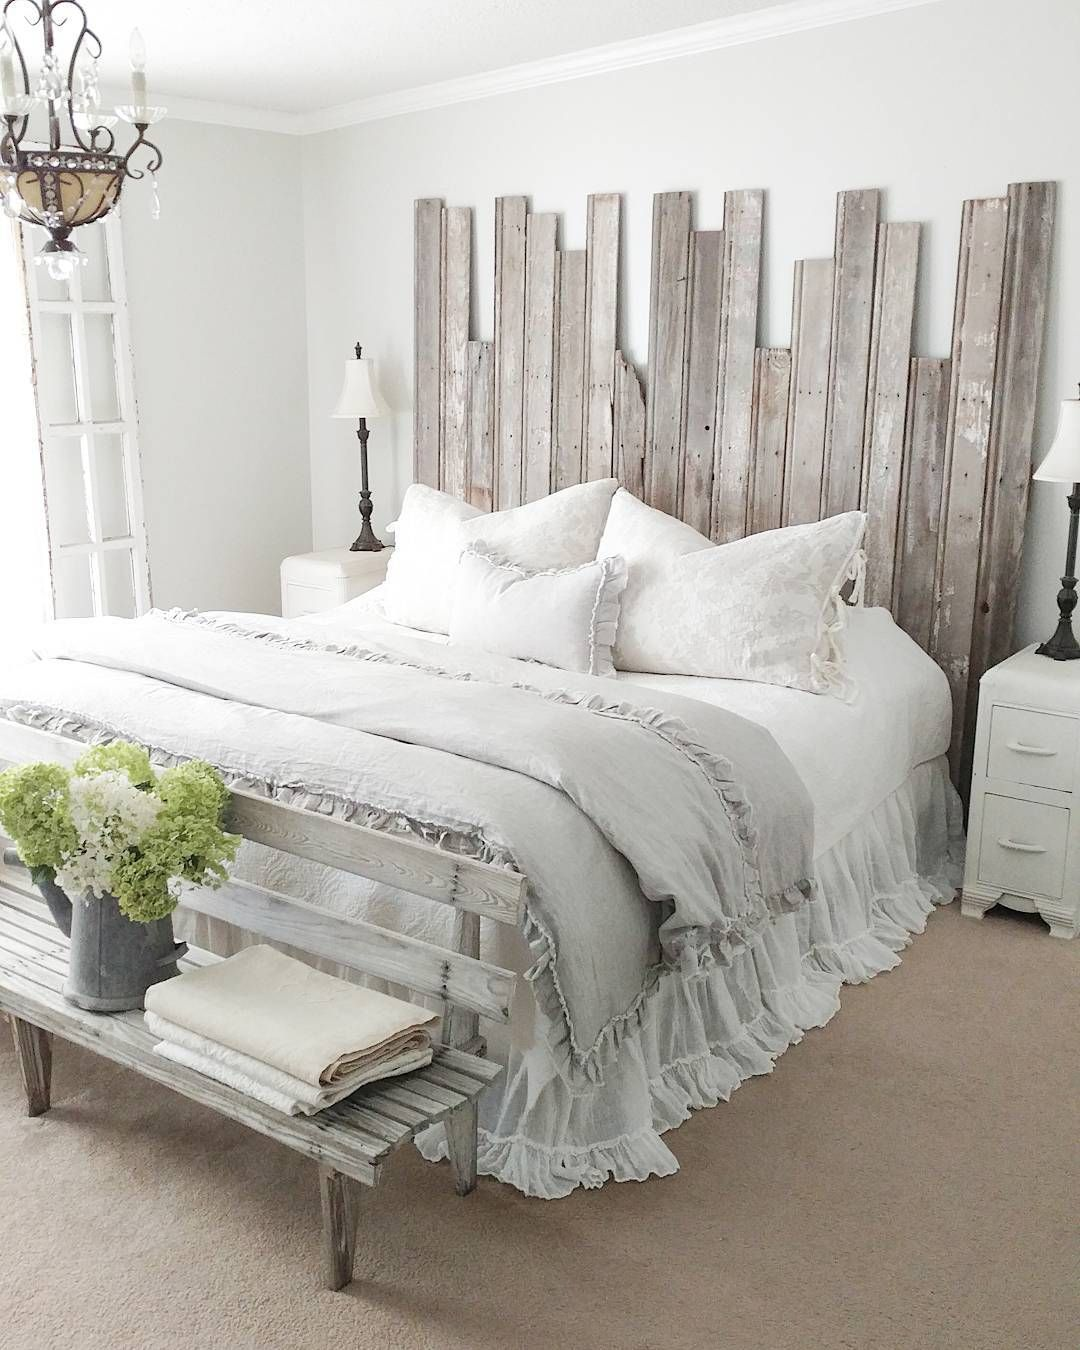 Nursery Decor Ideas From Joanna Gaines: Designers To Follow On Instagram If You Love Joanna Gaines